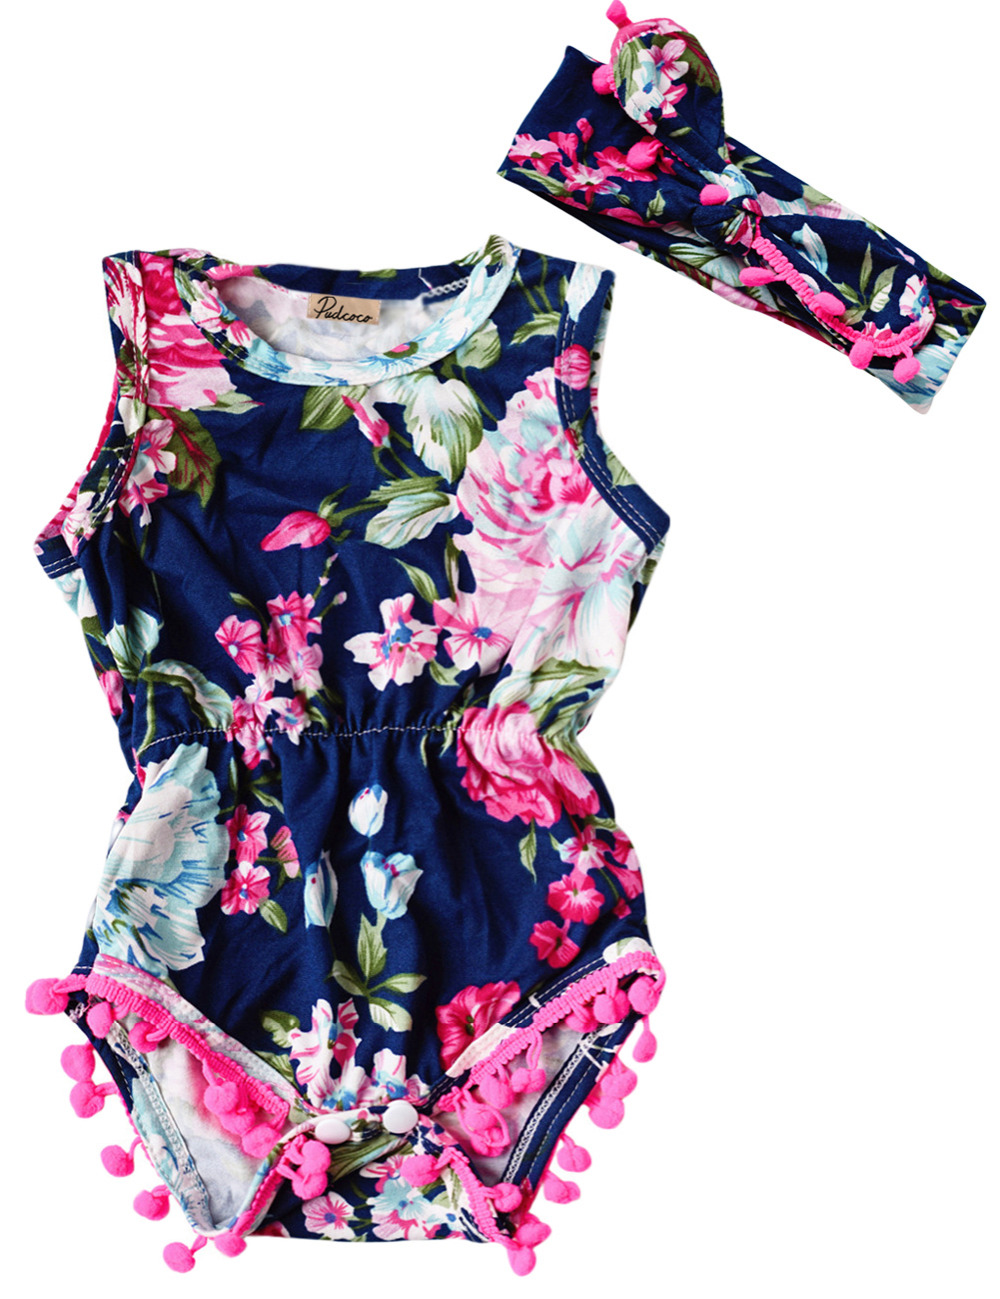 2PC Toddler Newborn Baby Girls Floral Romper Jumpsuit Sunsuit +Headband Cotton Outfits Girls Clothes Set